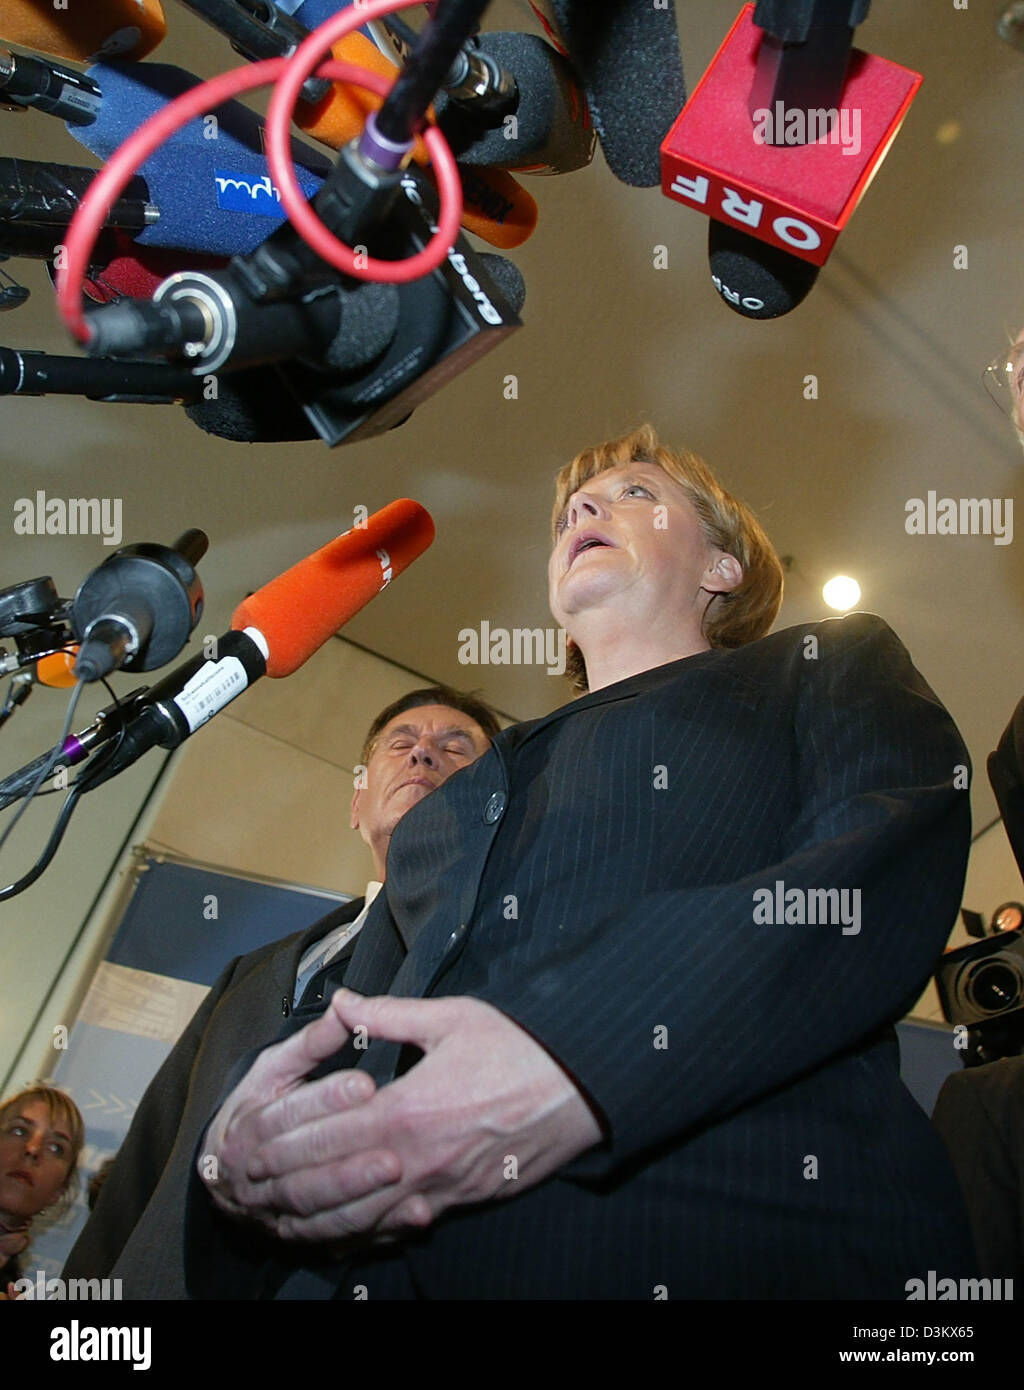 (dpa) - Angela Merkel (front), Chairwoman of the CDU and chancellor candidate, stands next to Michael Glos, Head of the Bavarian CSU, as she speaks during a short press conference after the session of the new elected parliamentary faction of the CDU/CSU in Berlin, Tuesday, 20 September 2005. Despite the week results in the general election for the German Bundestag, Merkel was re-el Stock Photo